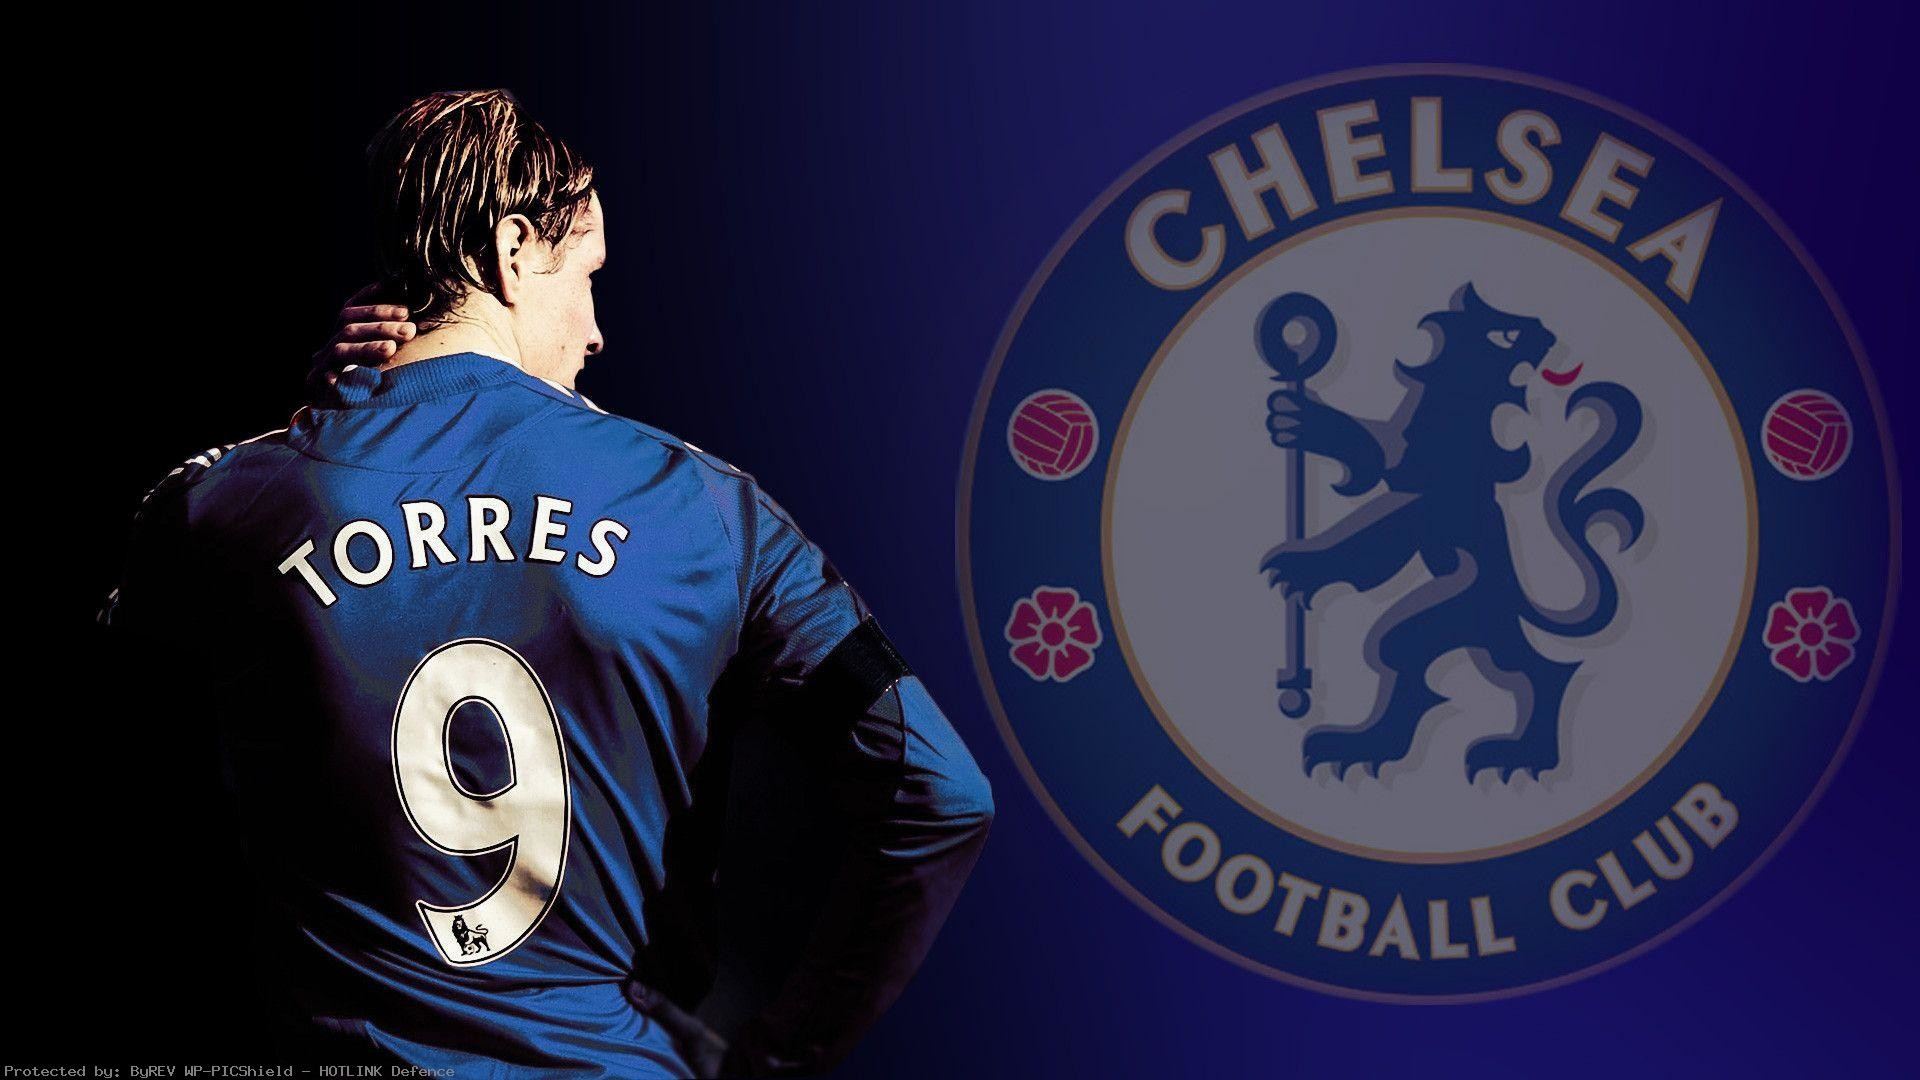 1920x1080 Torres Chelsea HD Sports Wallpapers